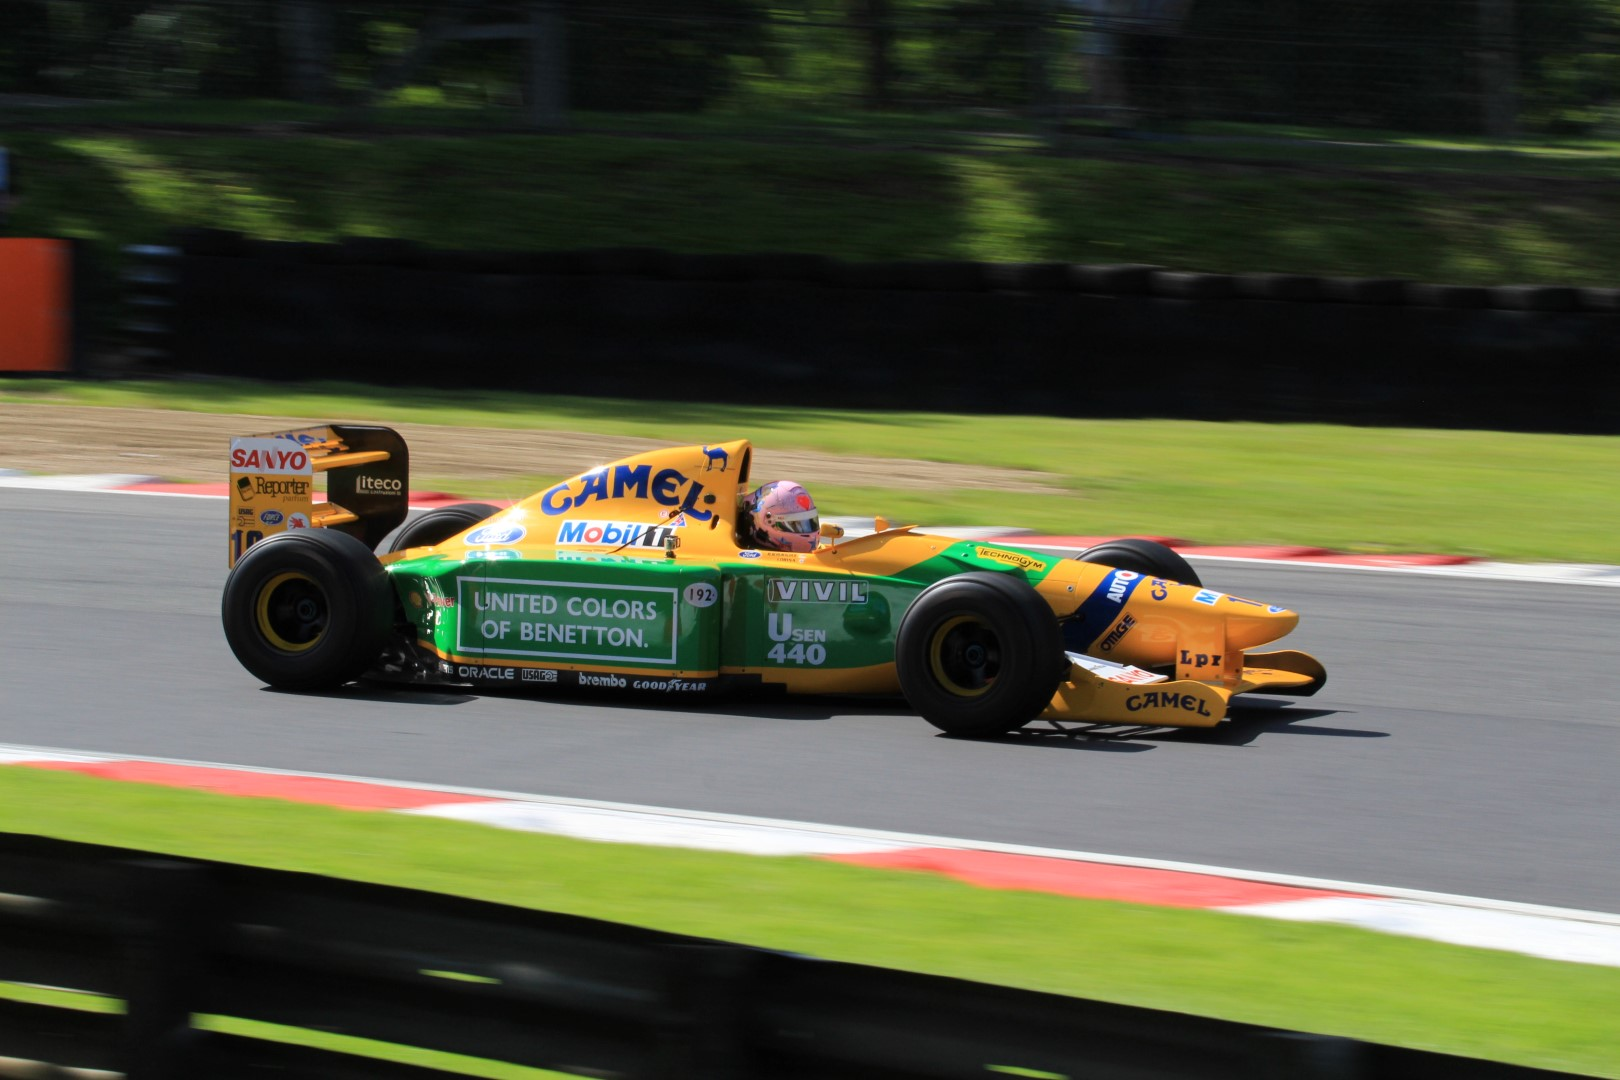 Ex Michael Schumacher 1992 Benetton B192 Formula 1 car to be exhibited at Motors By The Sea Festival on Sunday 16thSeptember.